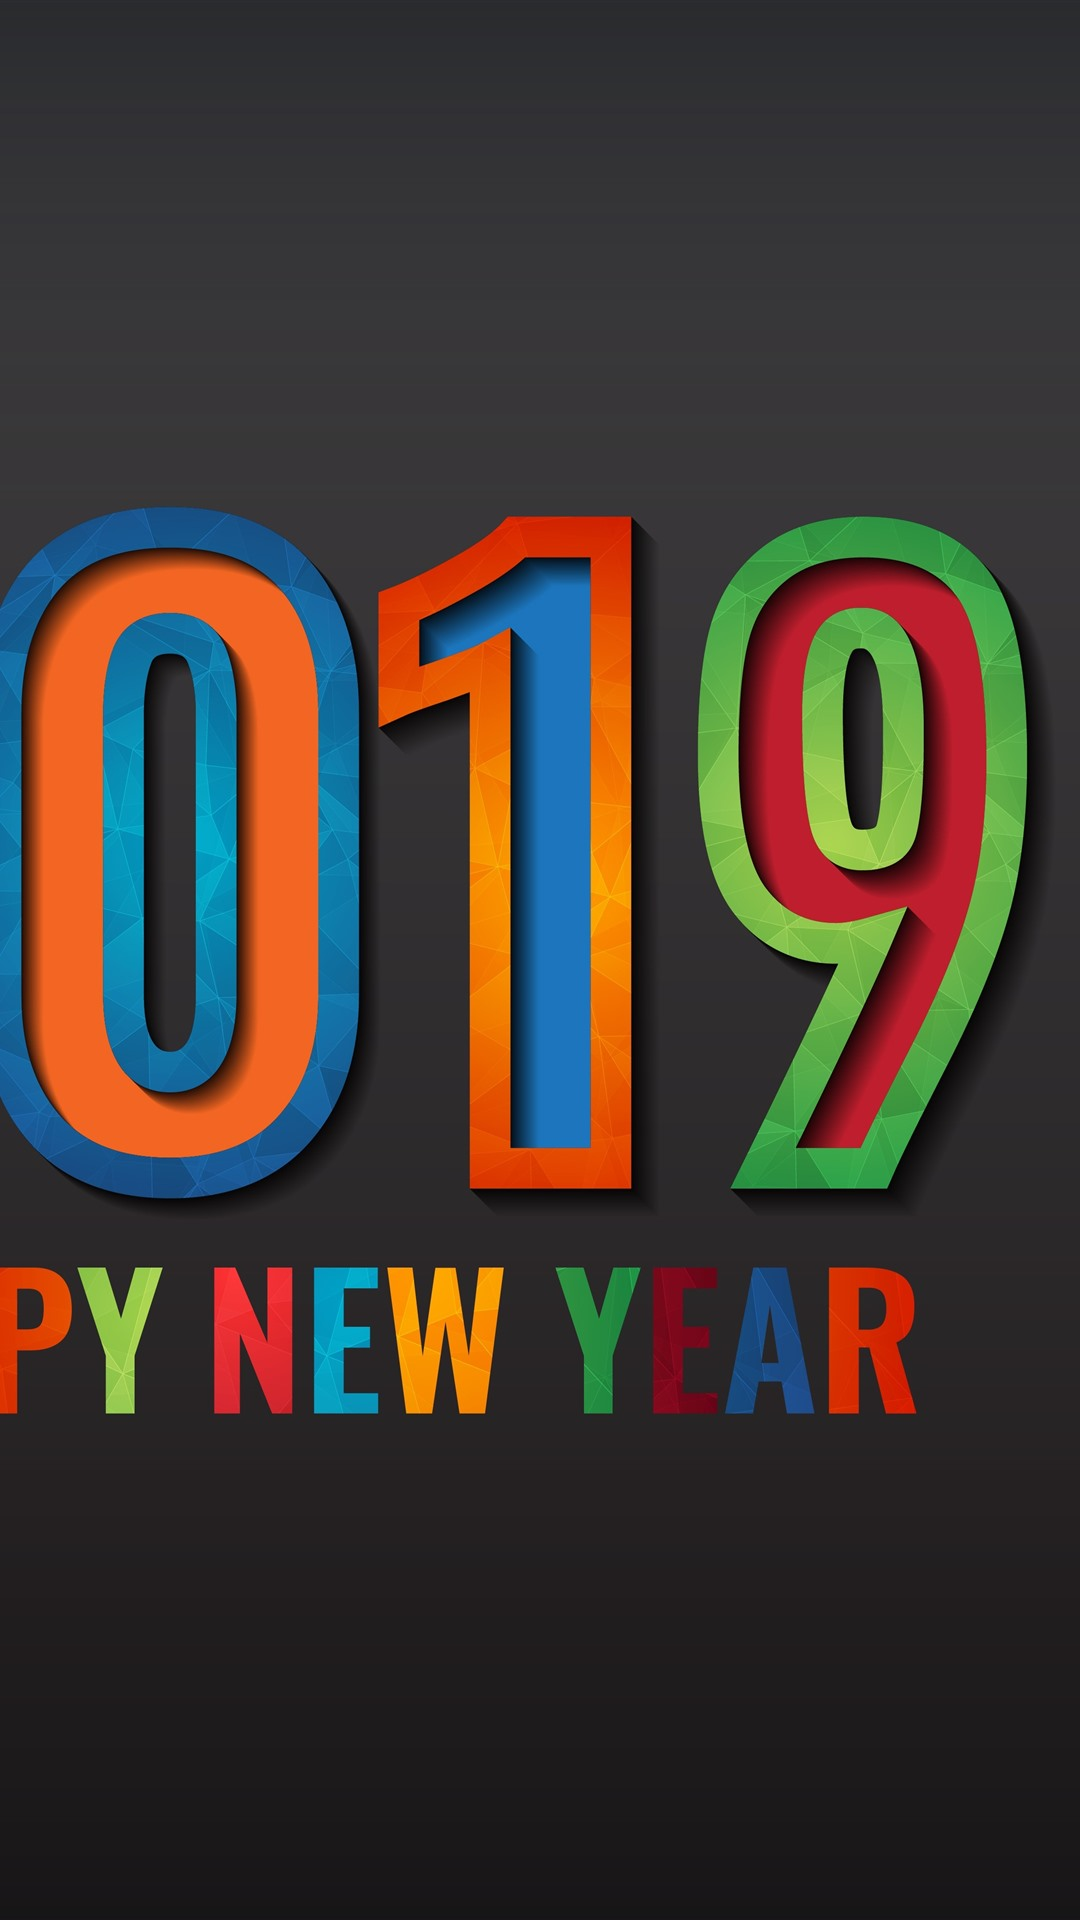 Wallpaper Happy New Year 2019 3840x2160 Uhd 4k Picture Image